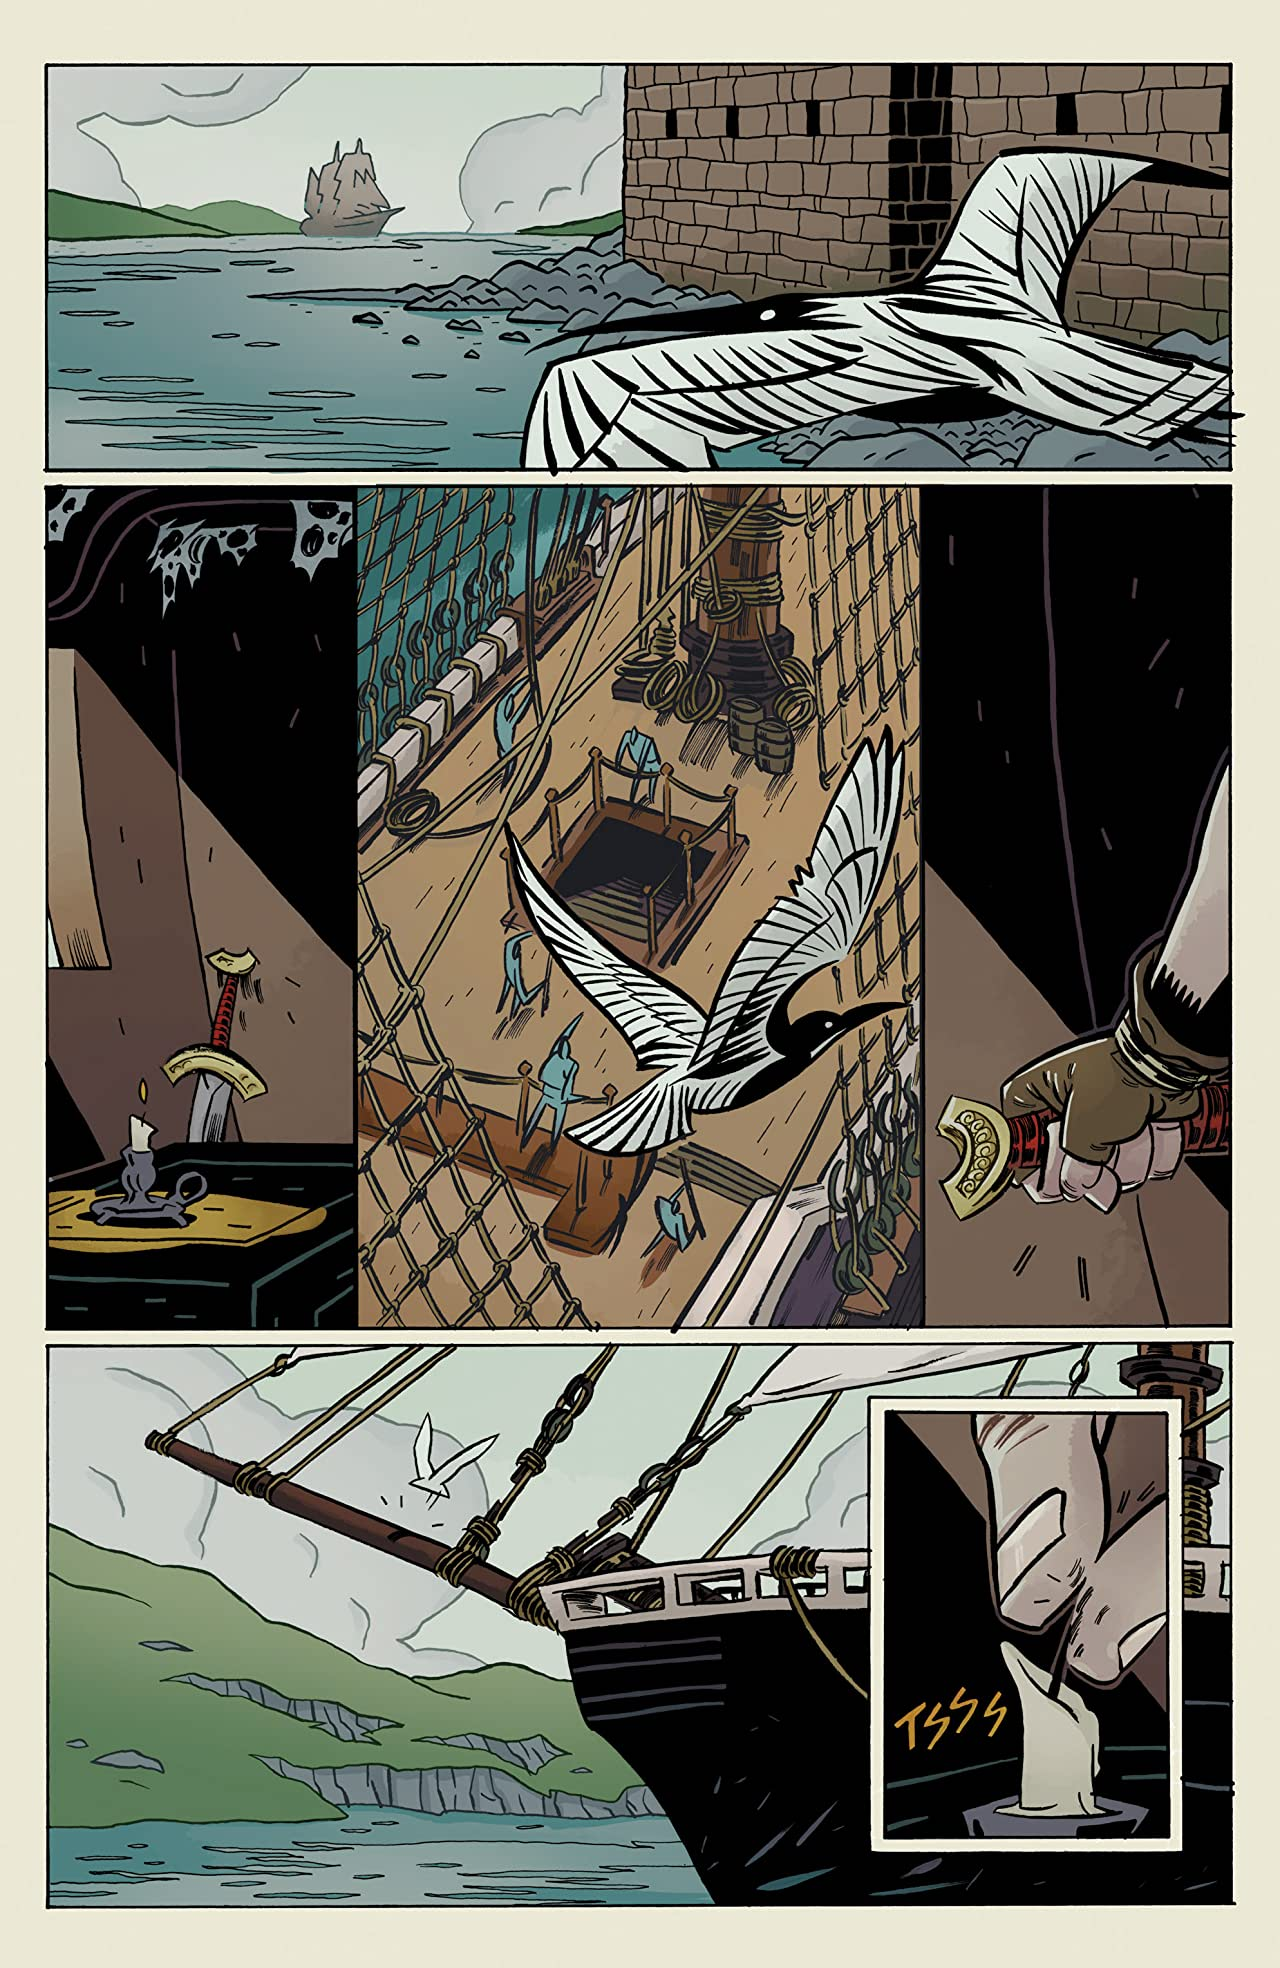 Head Lopper Vol. 1: The Island or A Plague Of Beasts